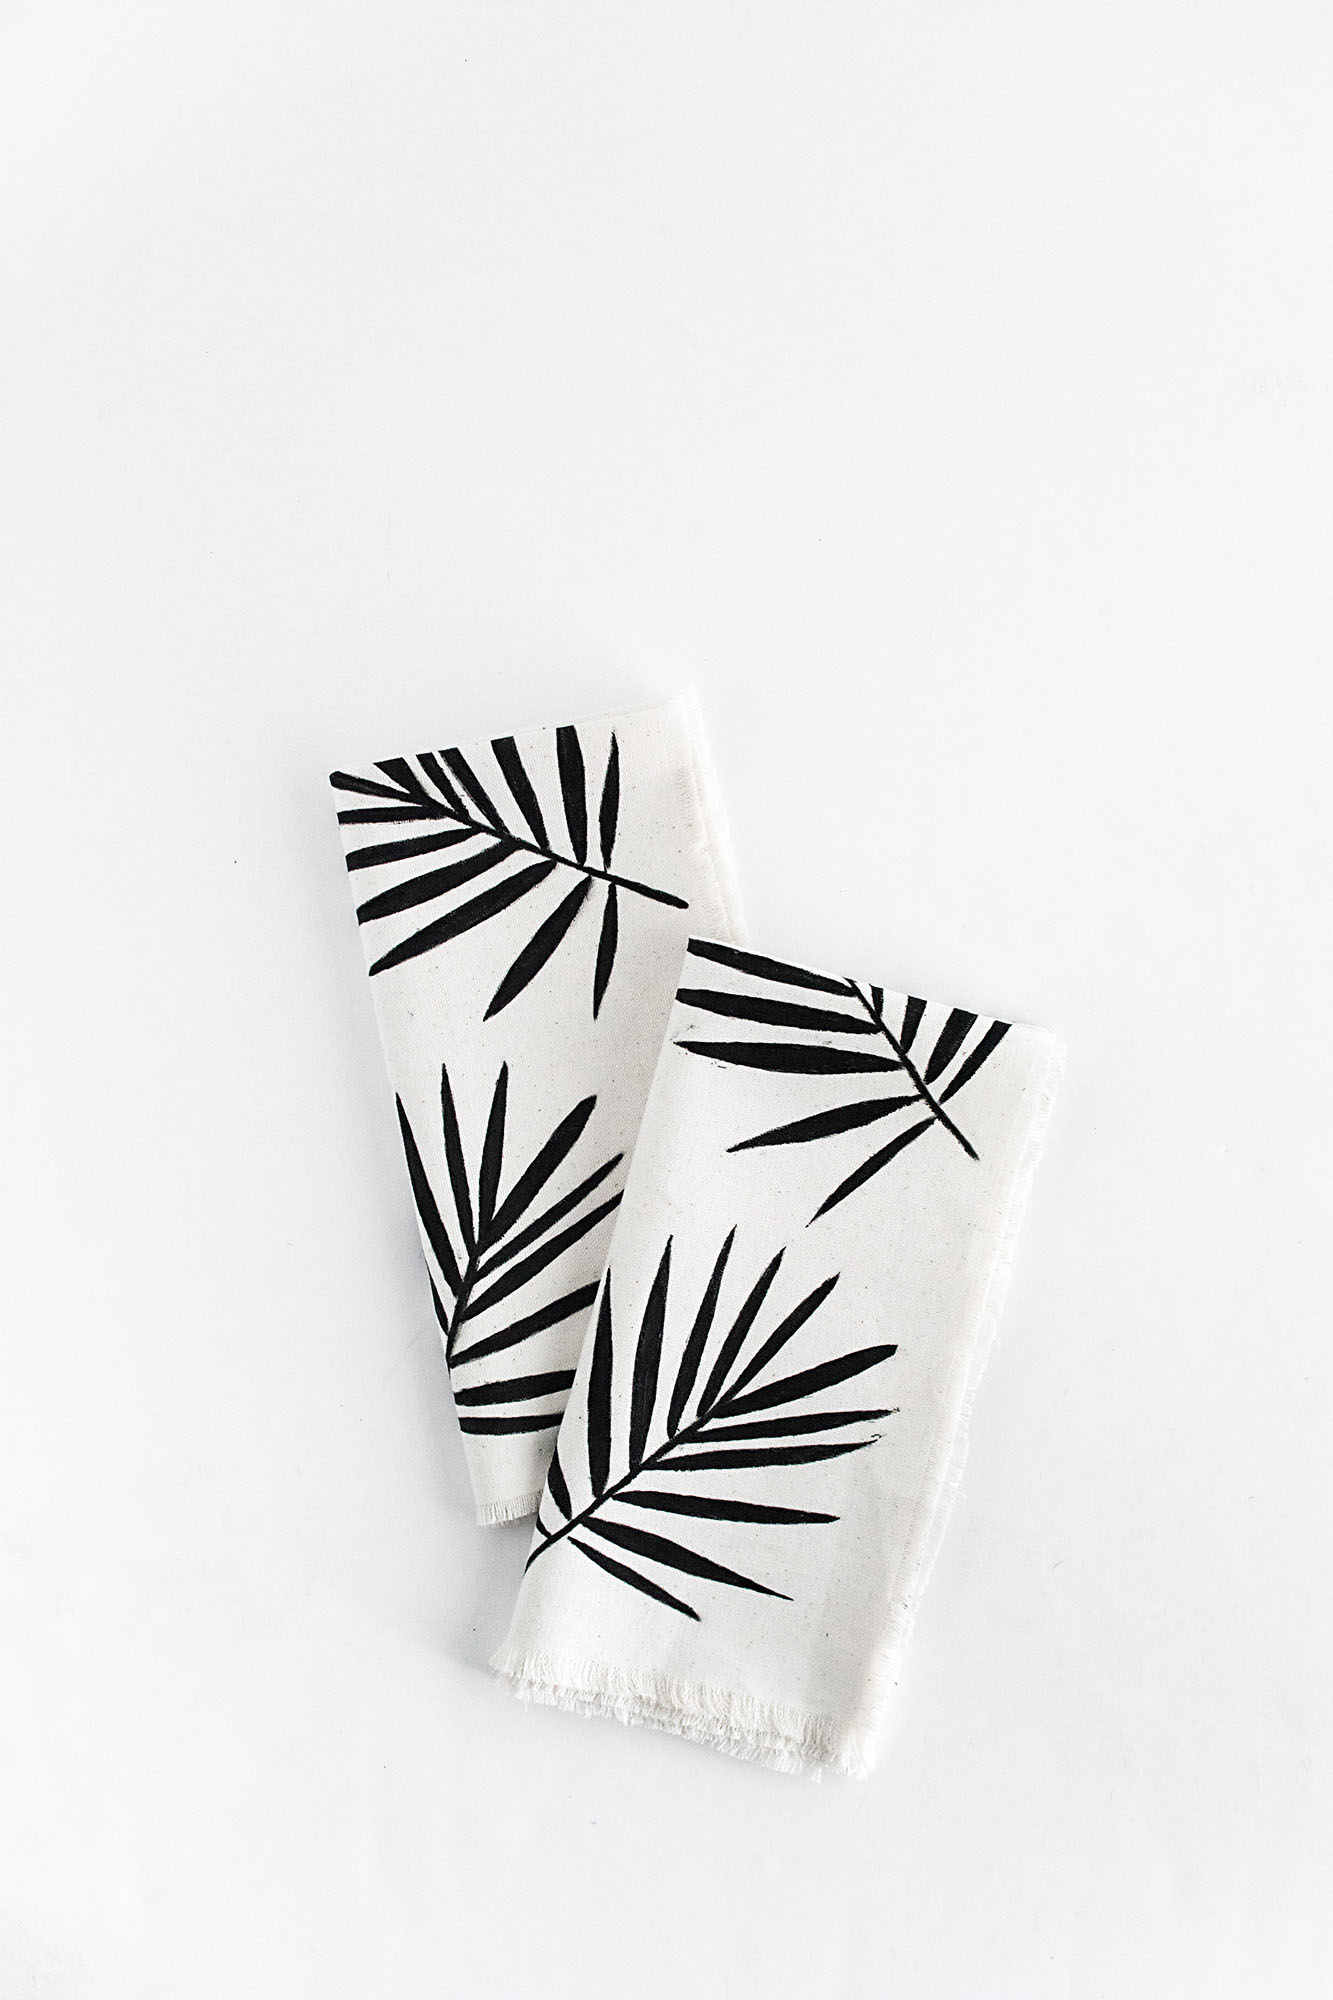 DIY-Palm Leaf Napkins